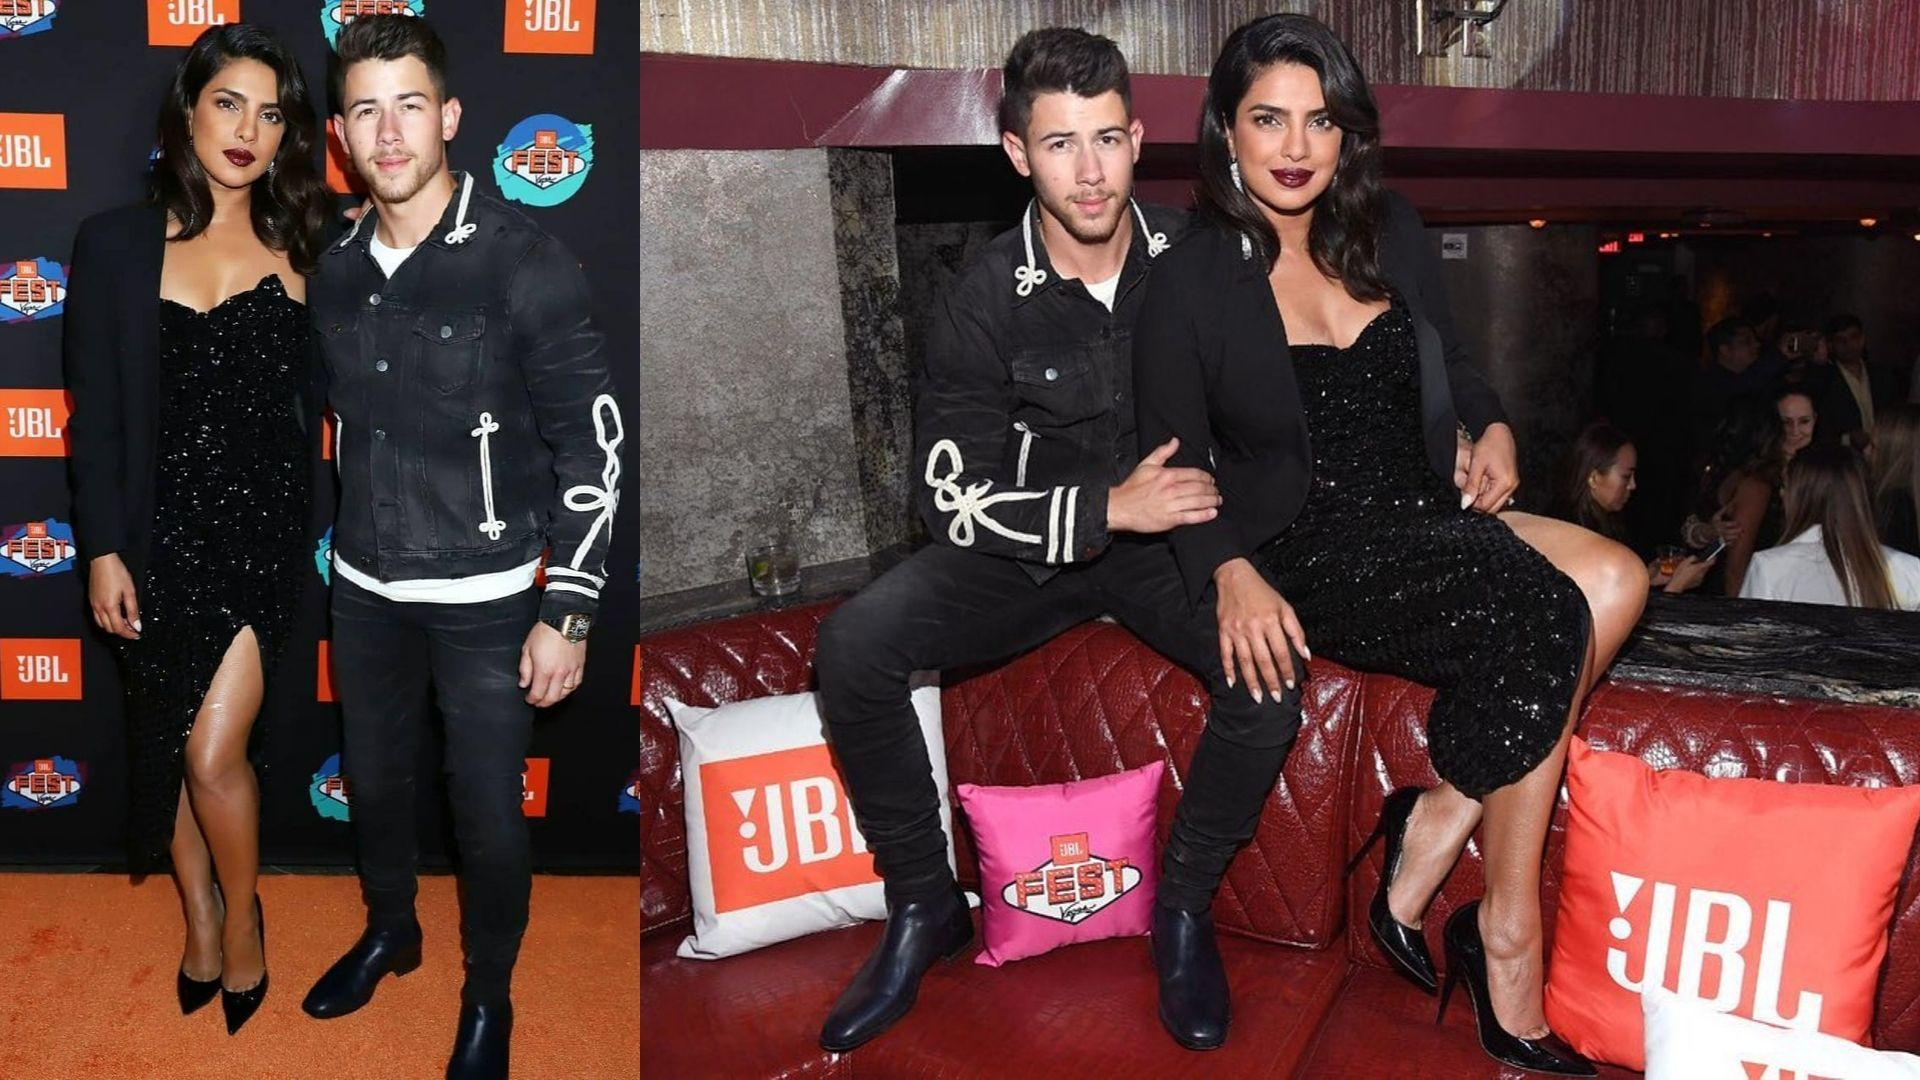 Priyanka Chopra And Nick Jonas Matched In Black For A Glitzy Las Vegas Date Night